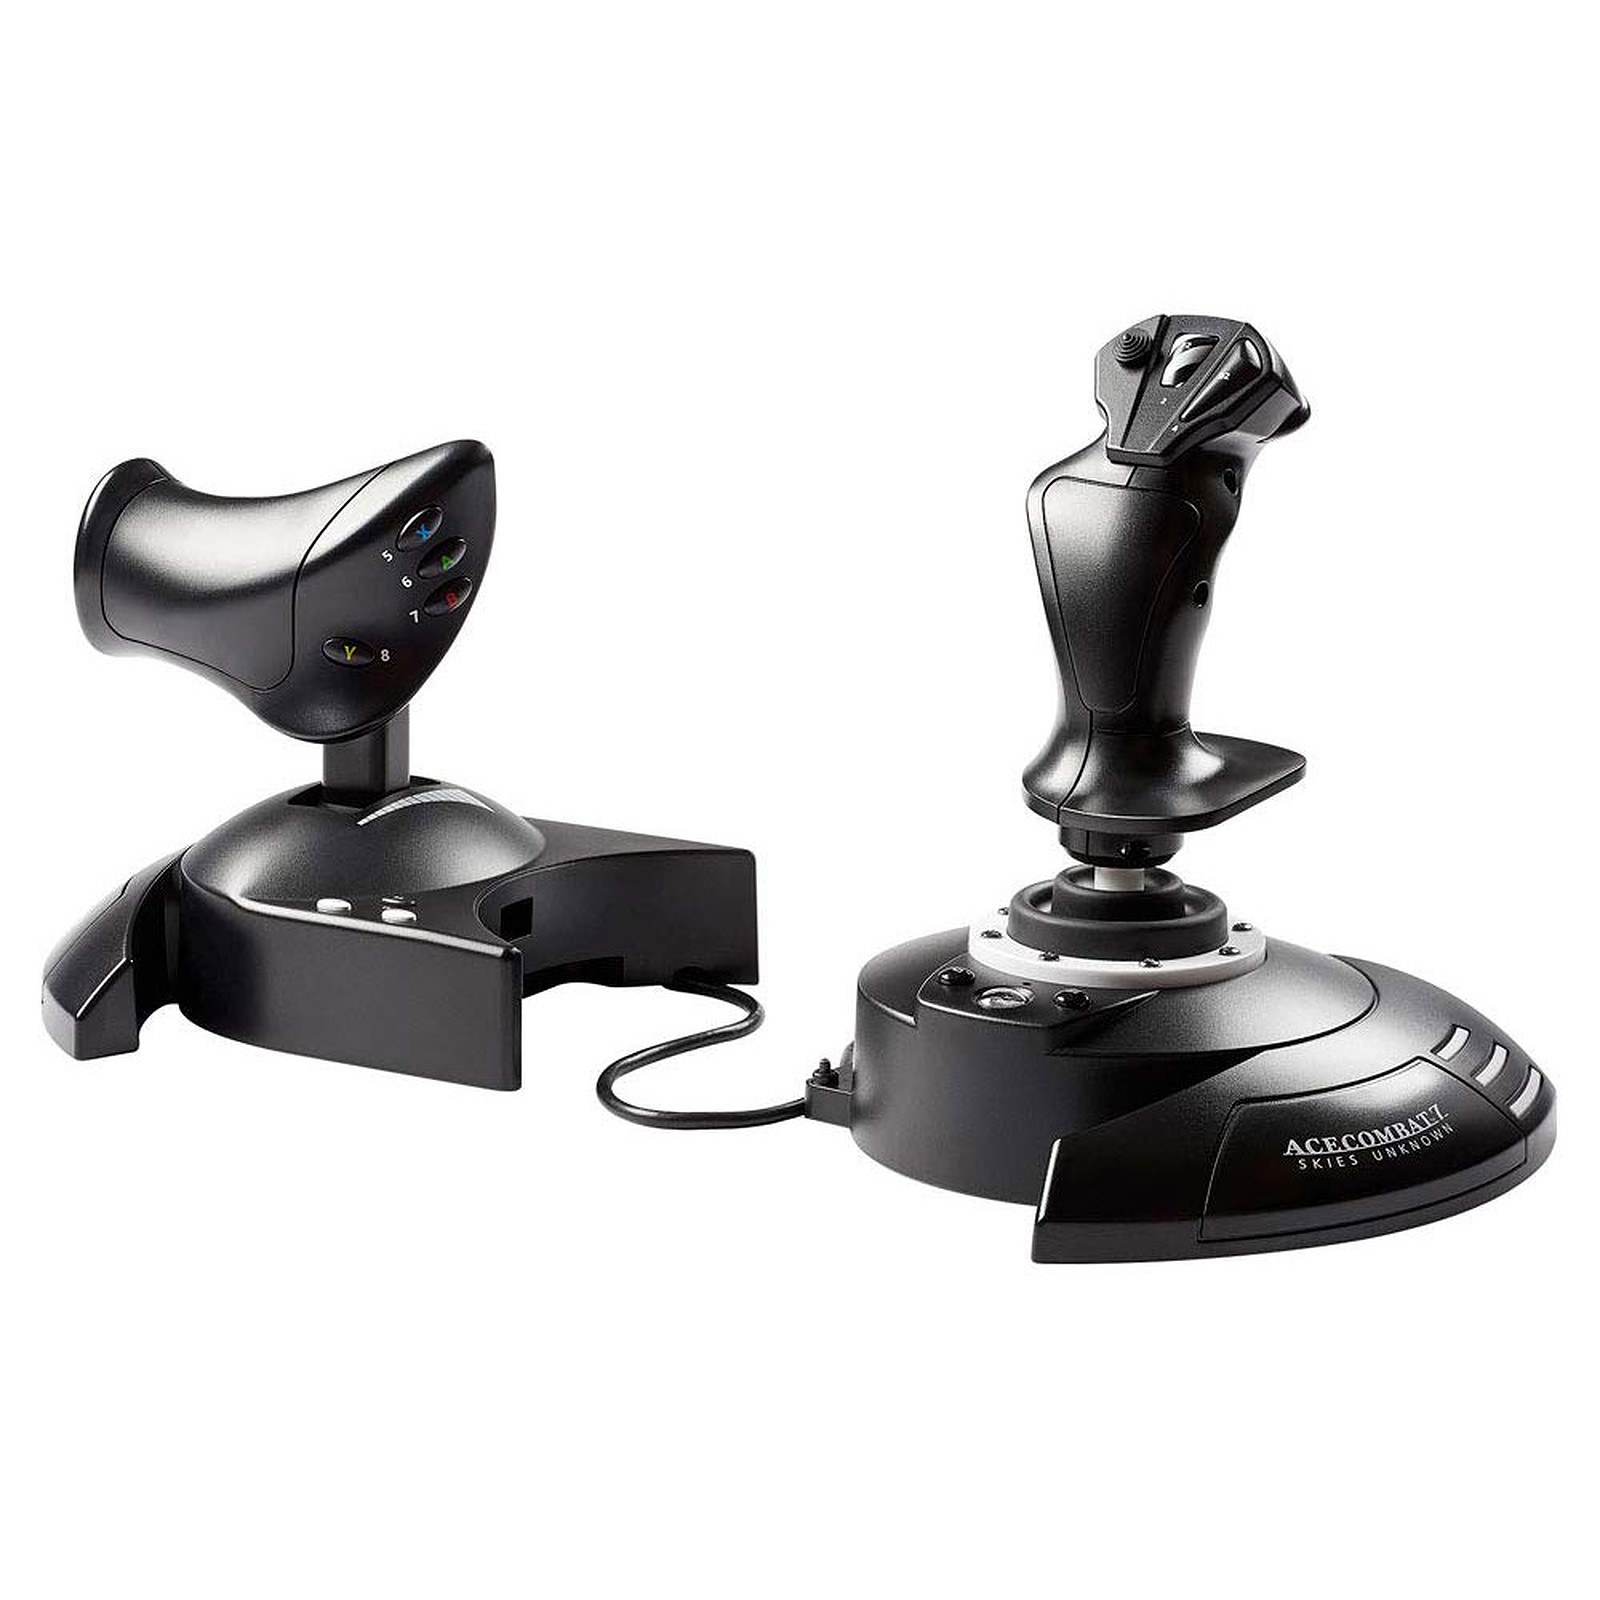 Thrustmaster T.Flight Hotas One Ace Combat 7 Edition